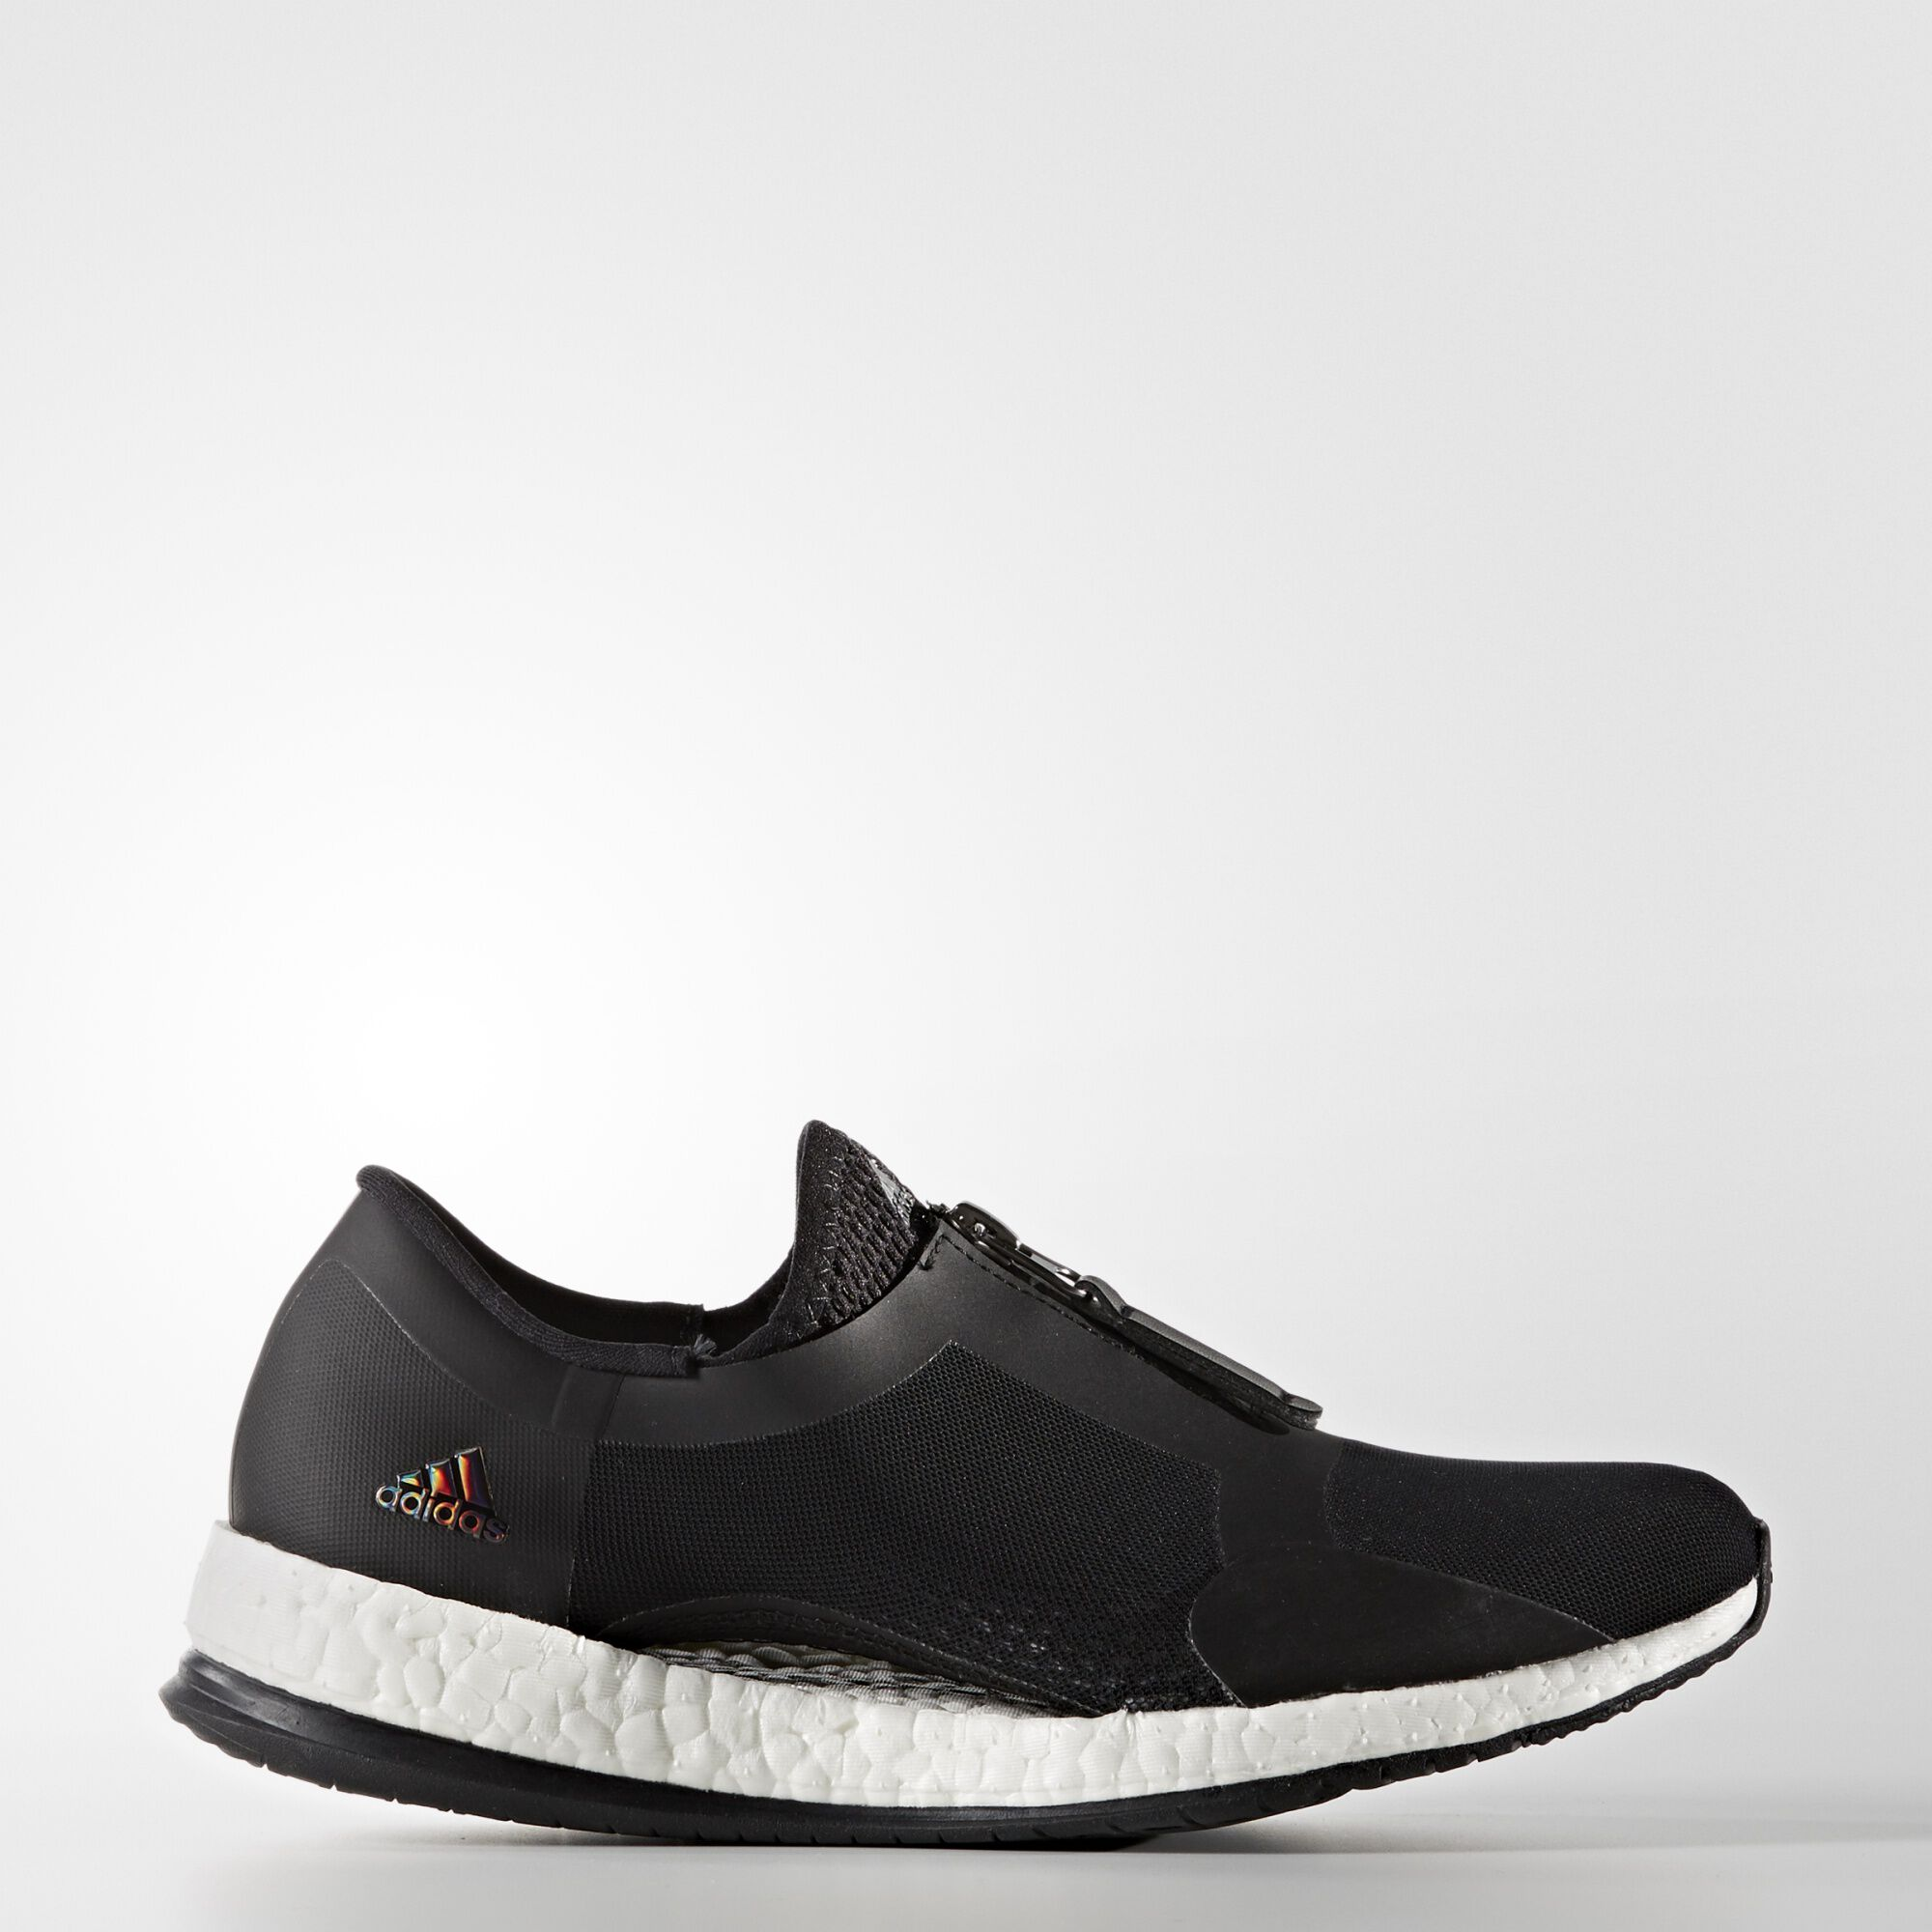 fa1b56e6e adidas pure boost x trainer - women s